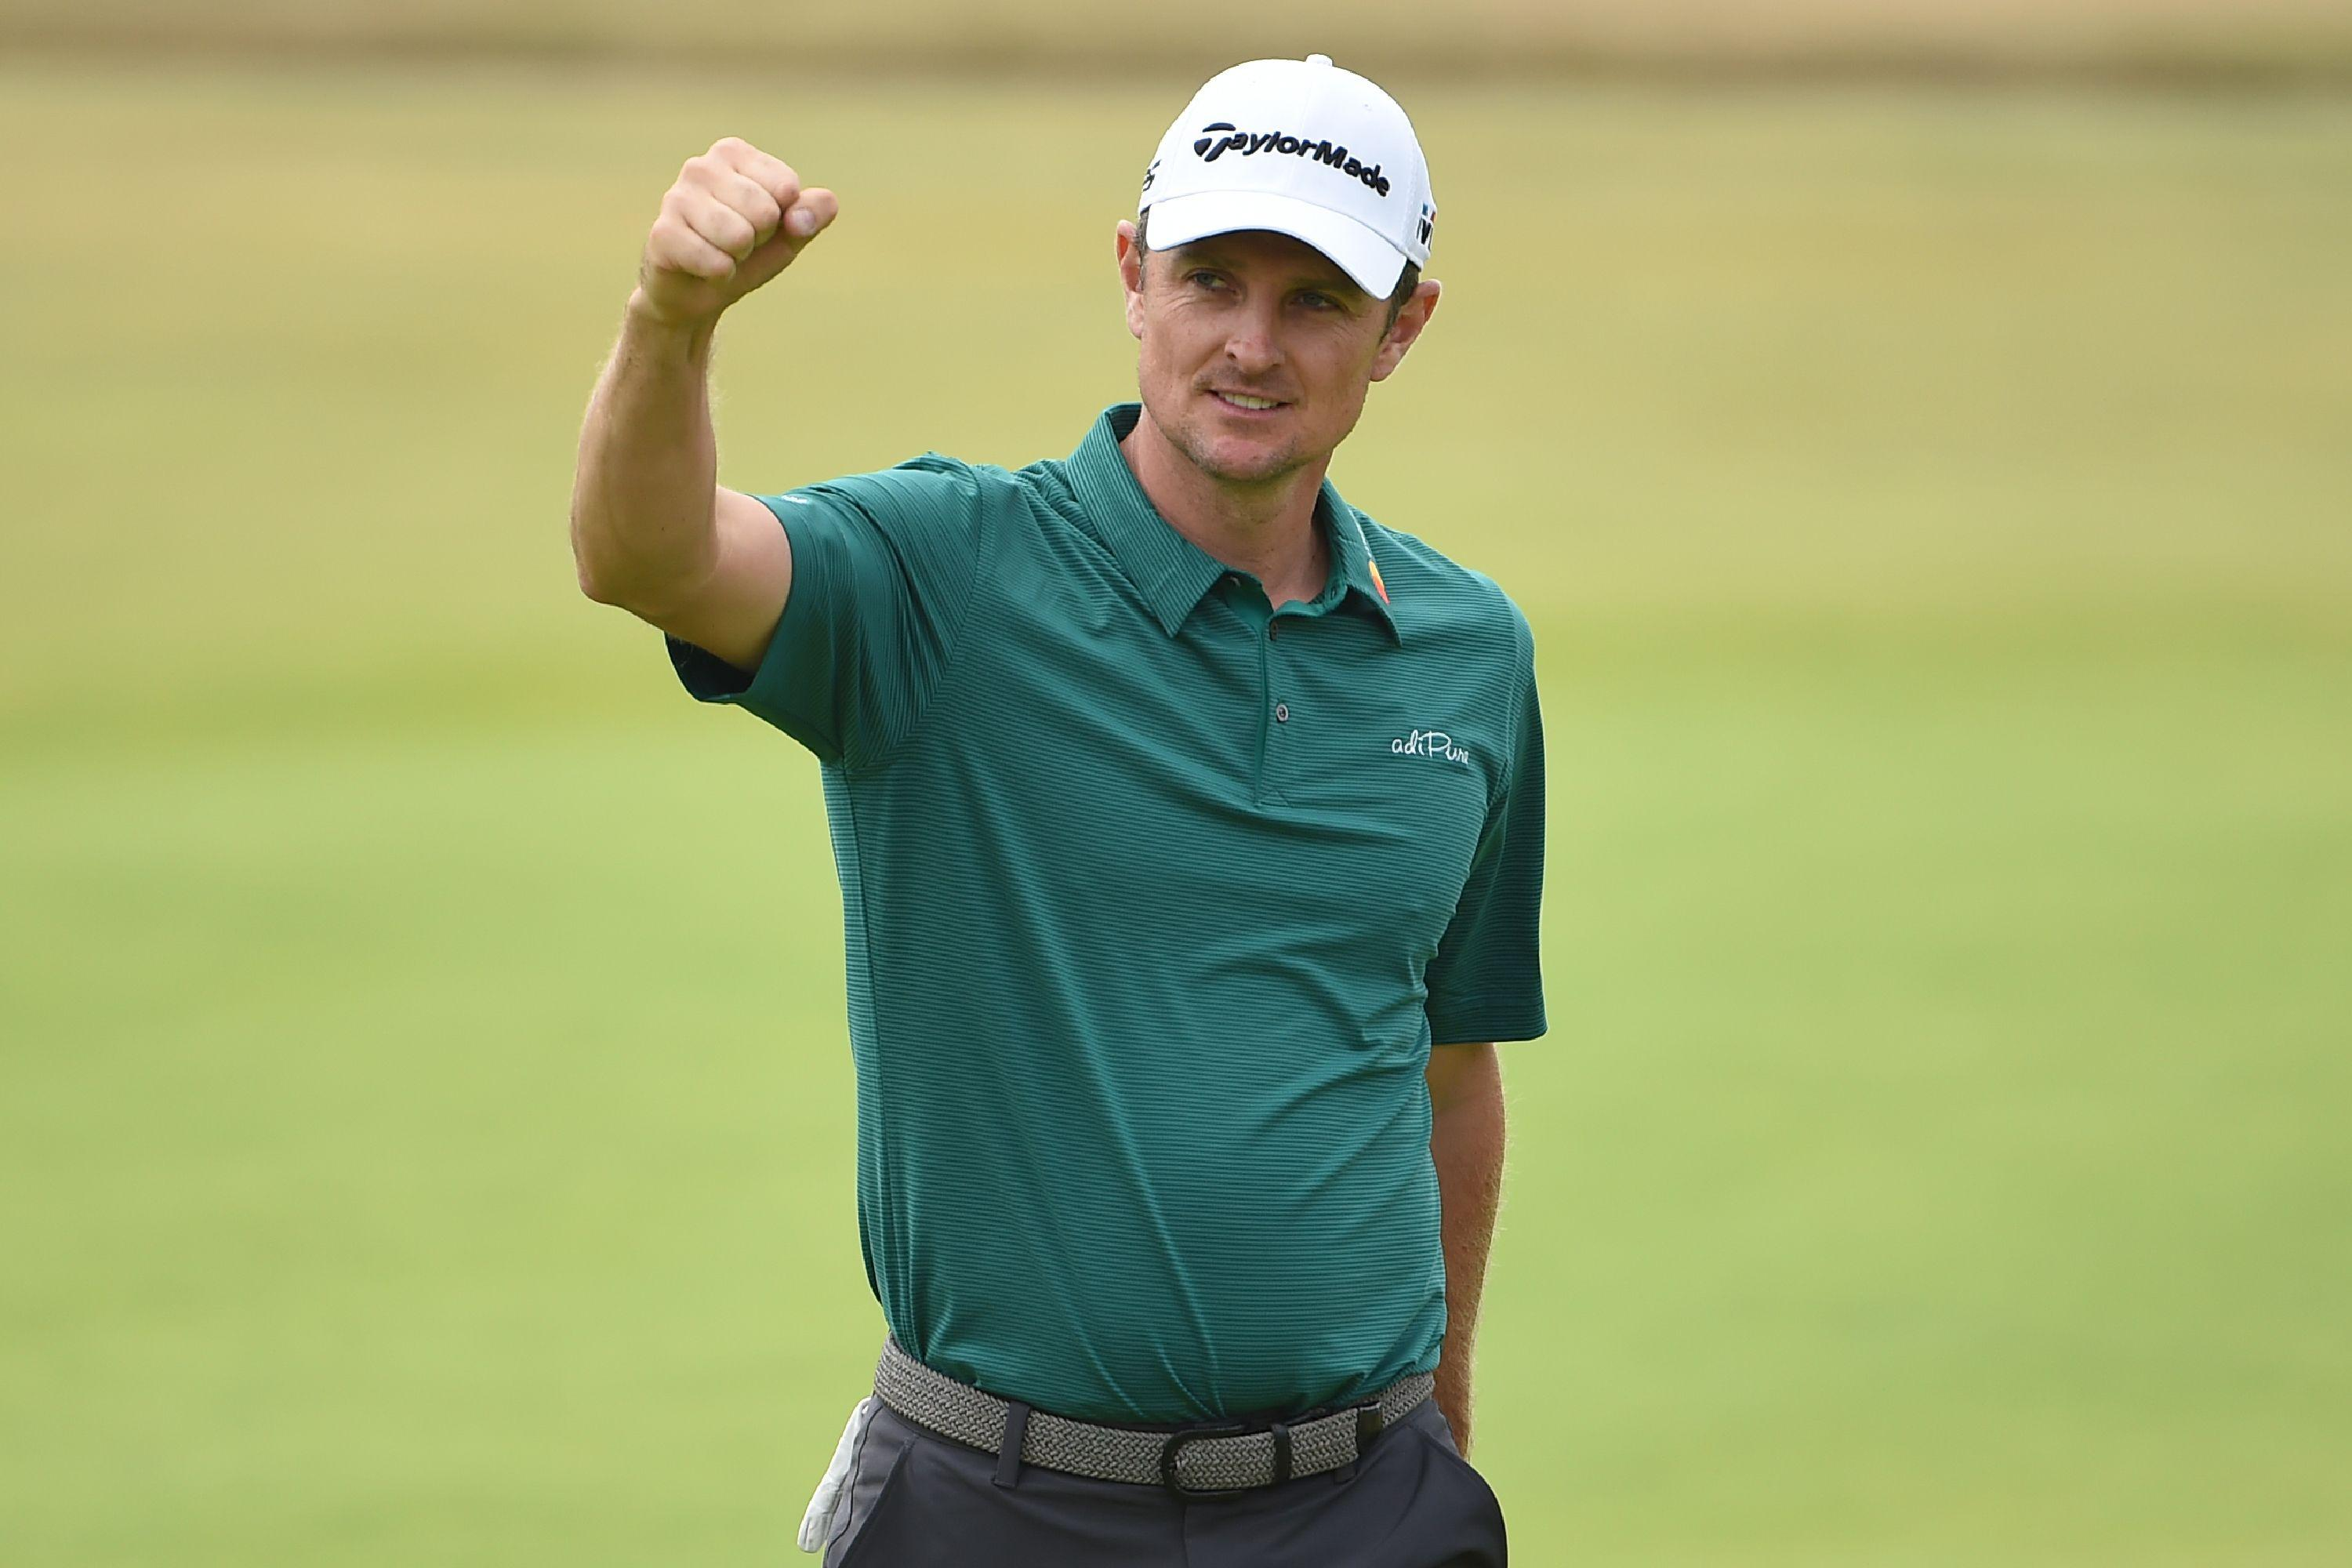 Justin Rose has been using a powerful laser to boost his putting performance